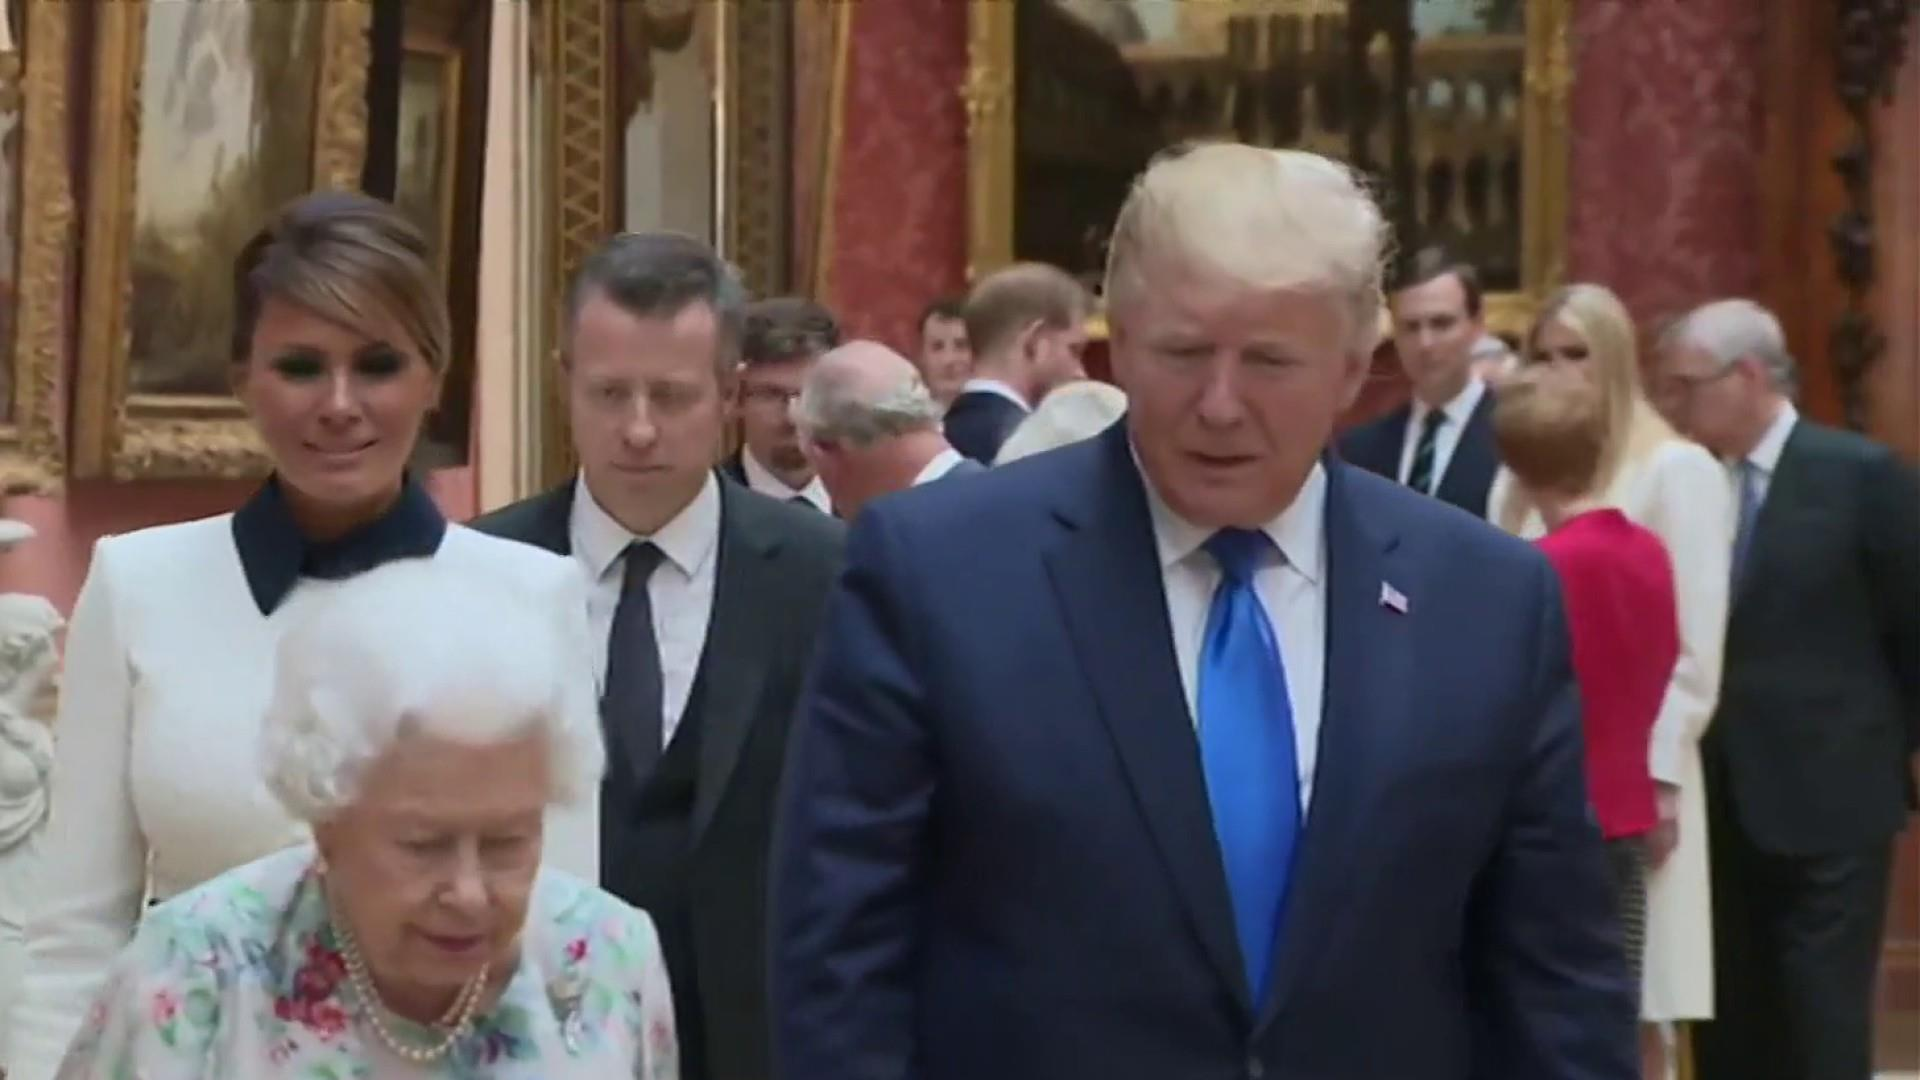 Big Question: How strong is the special relationship between America and the UK?